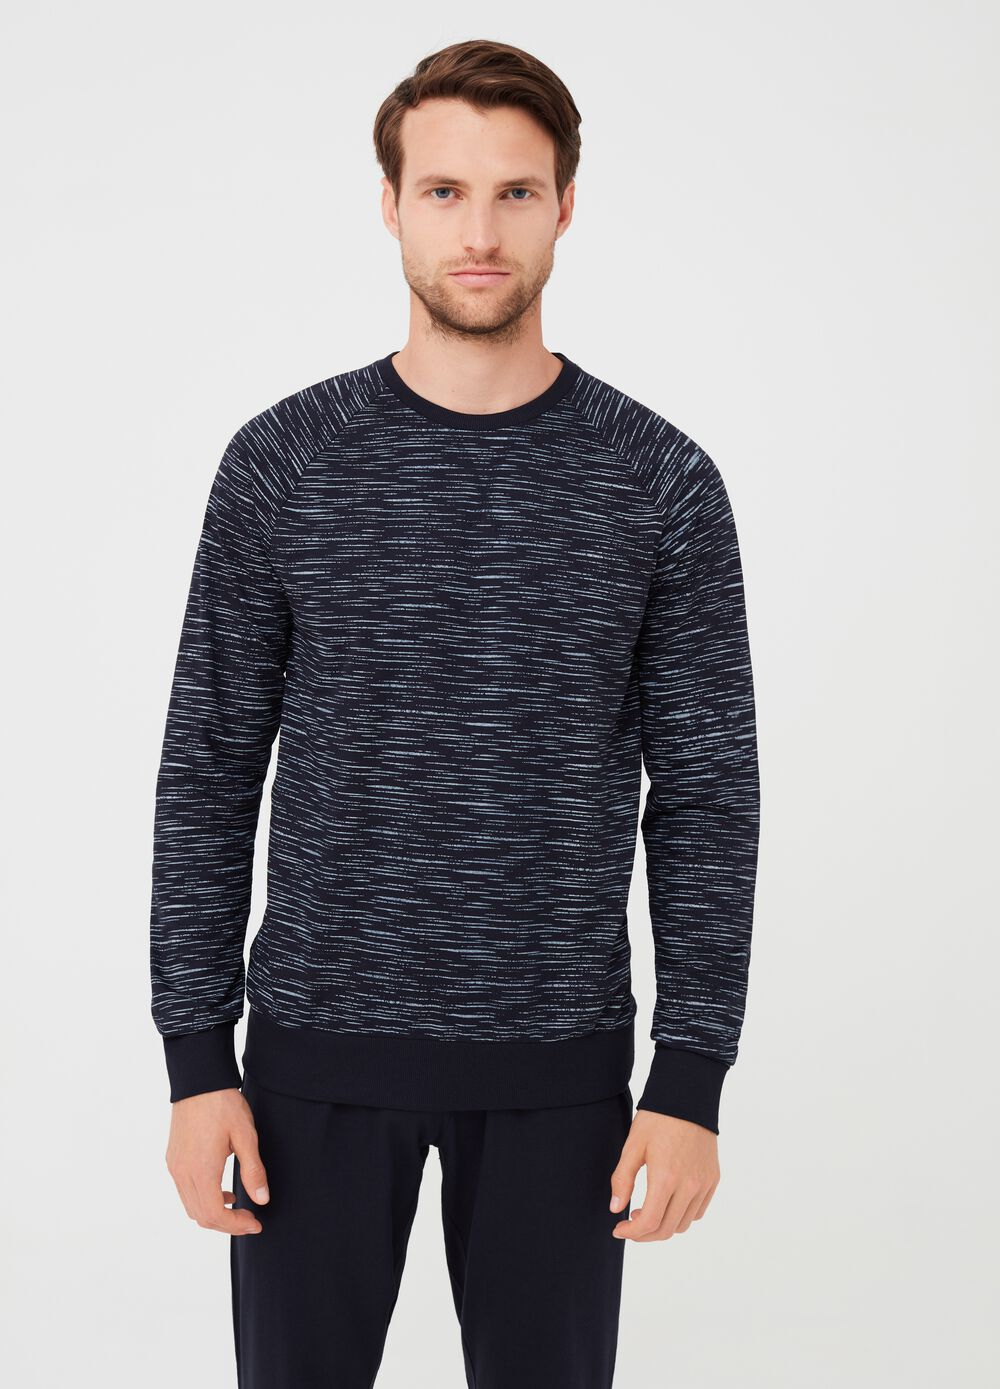 Round neck pyjamas with top and trousers